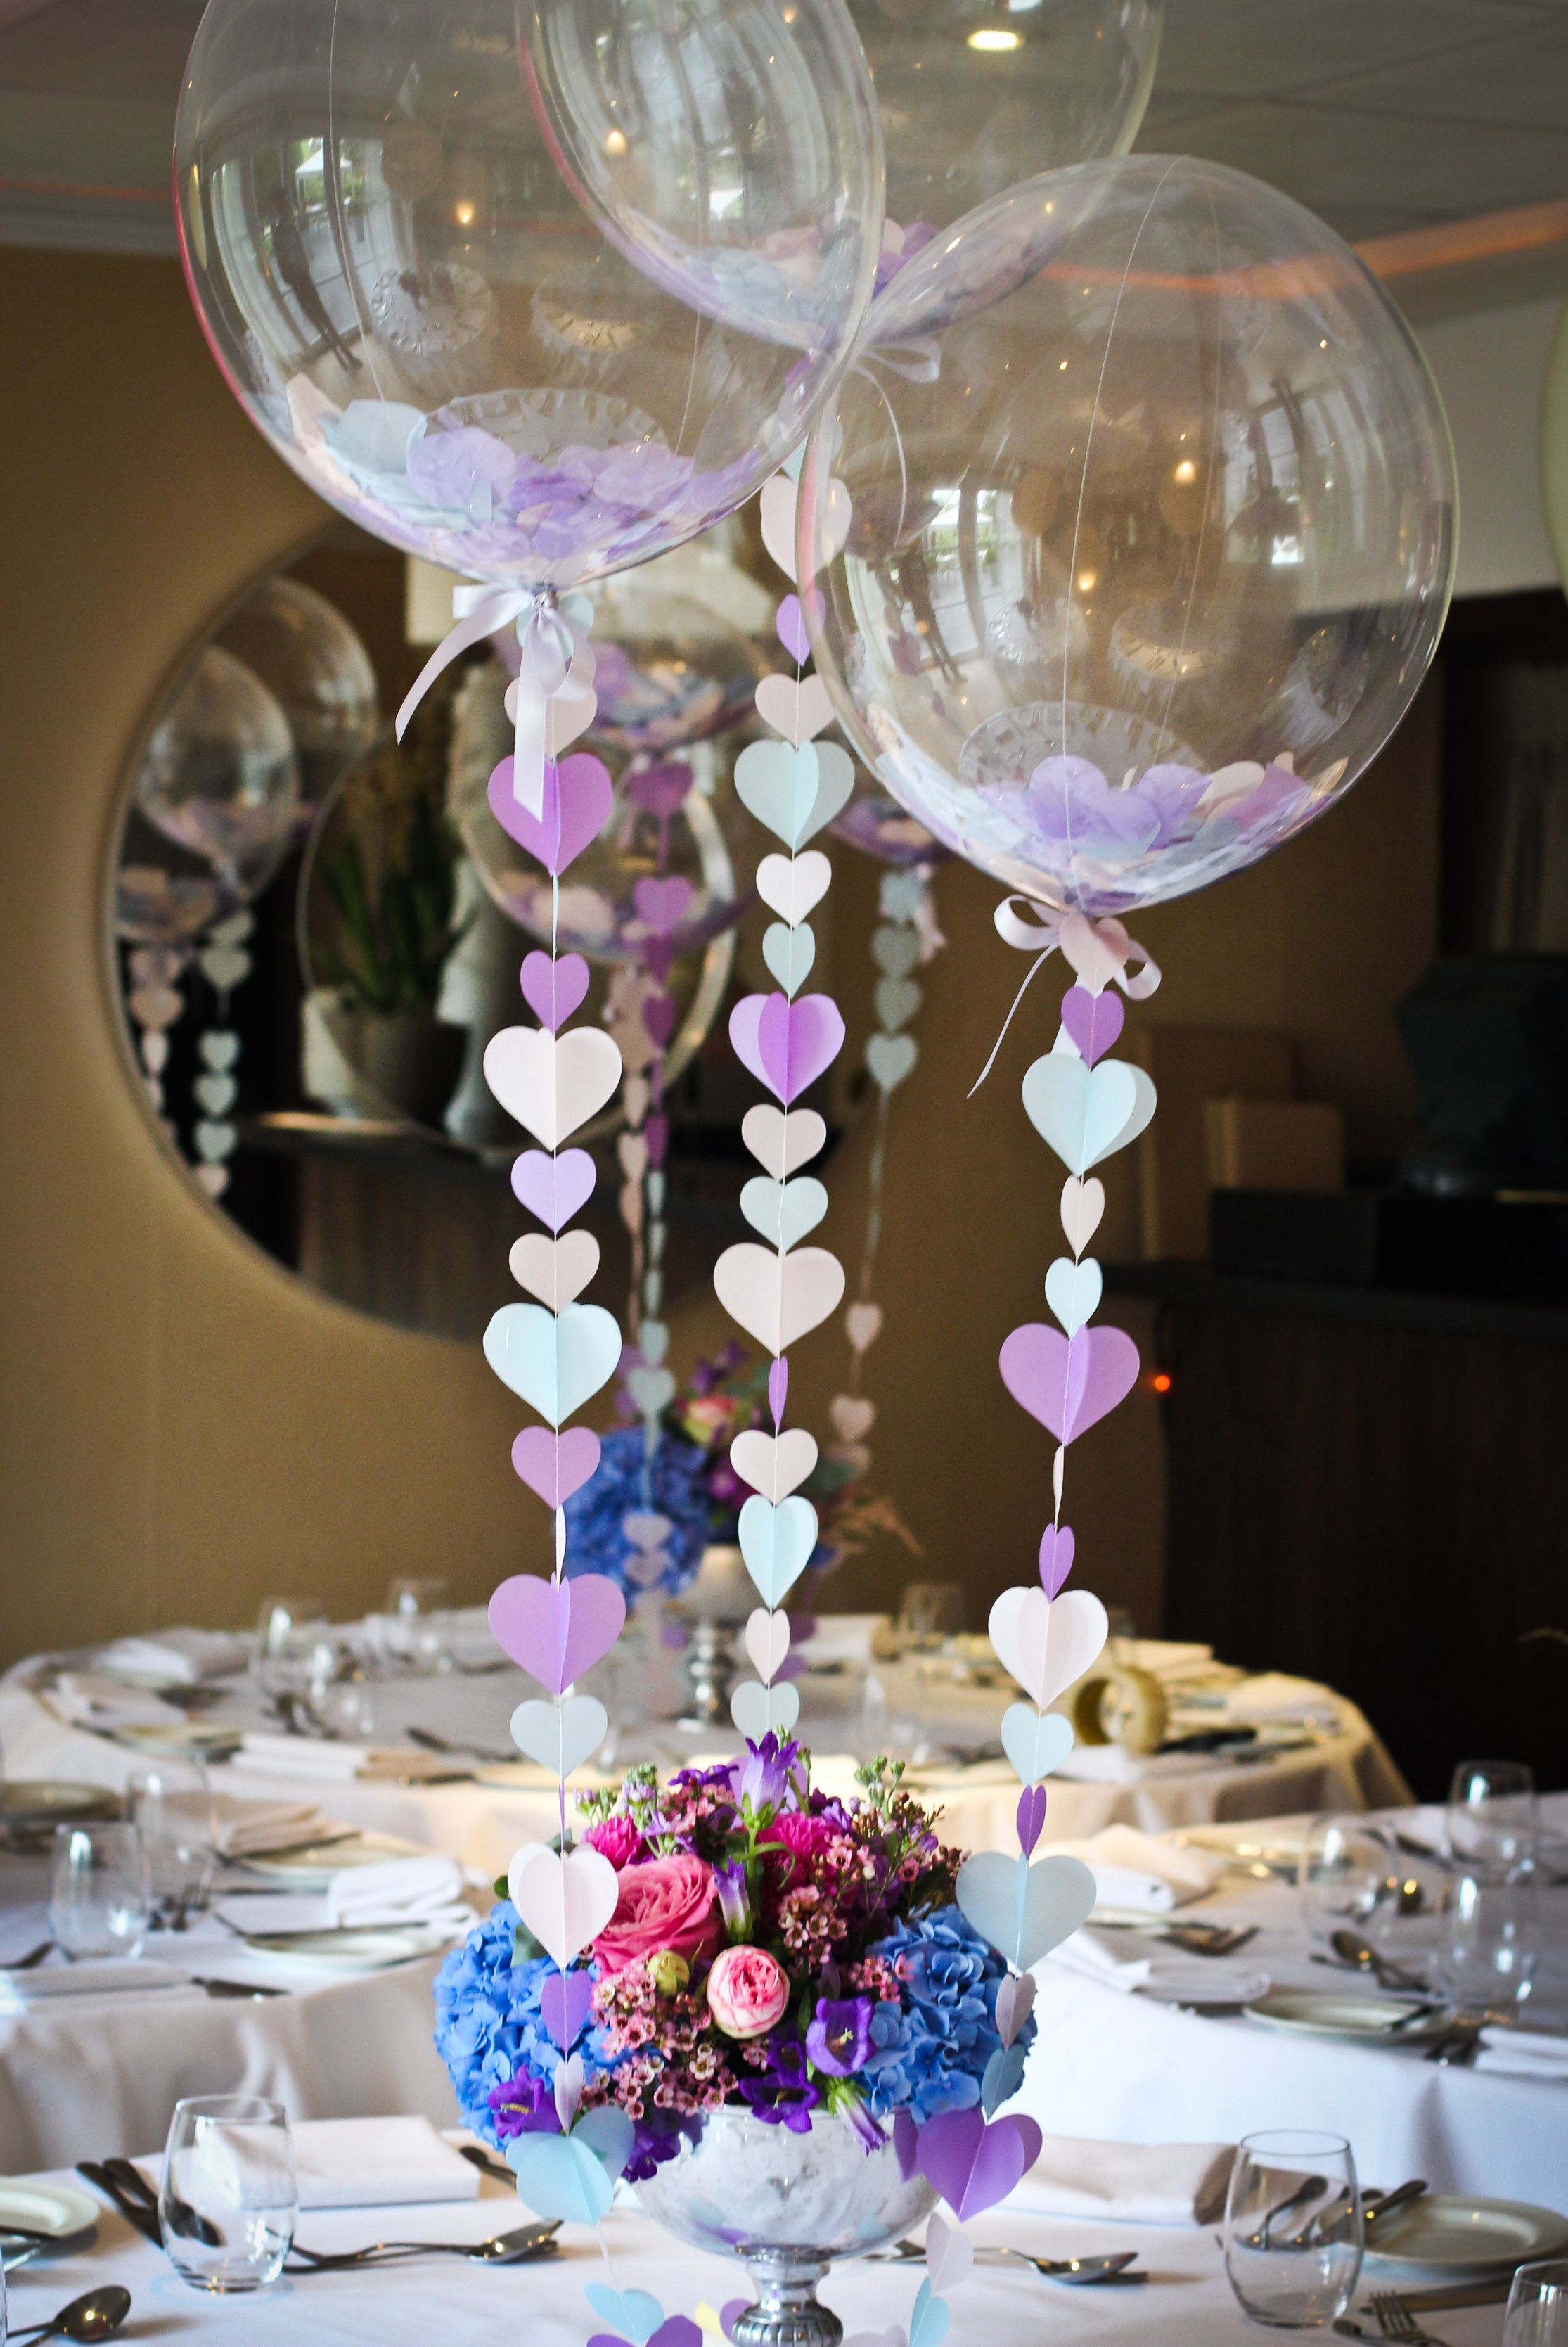 Blow wedding guests away with balloon décor house of coco